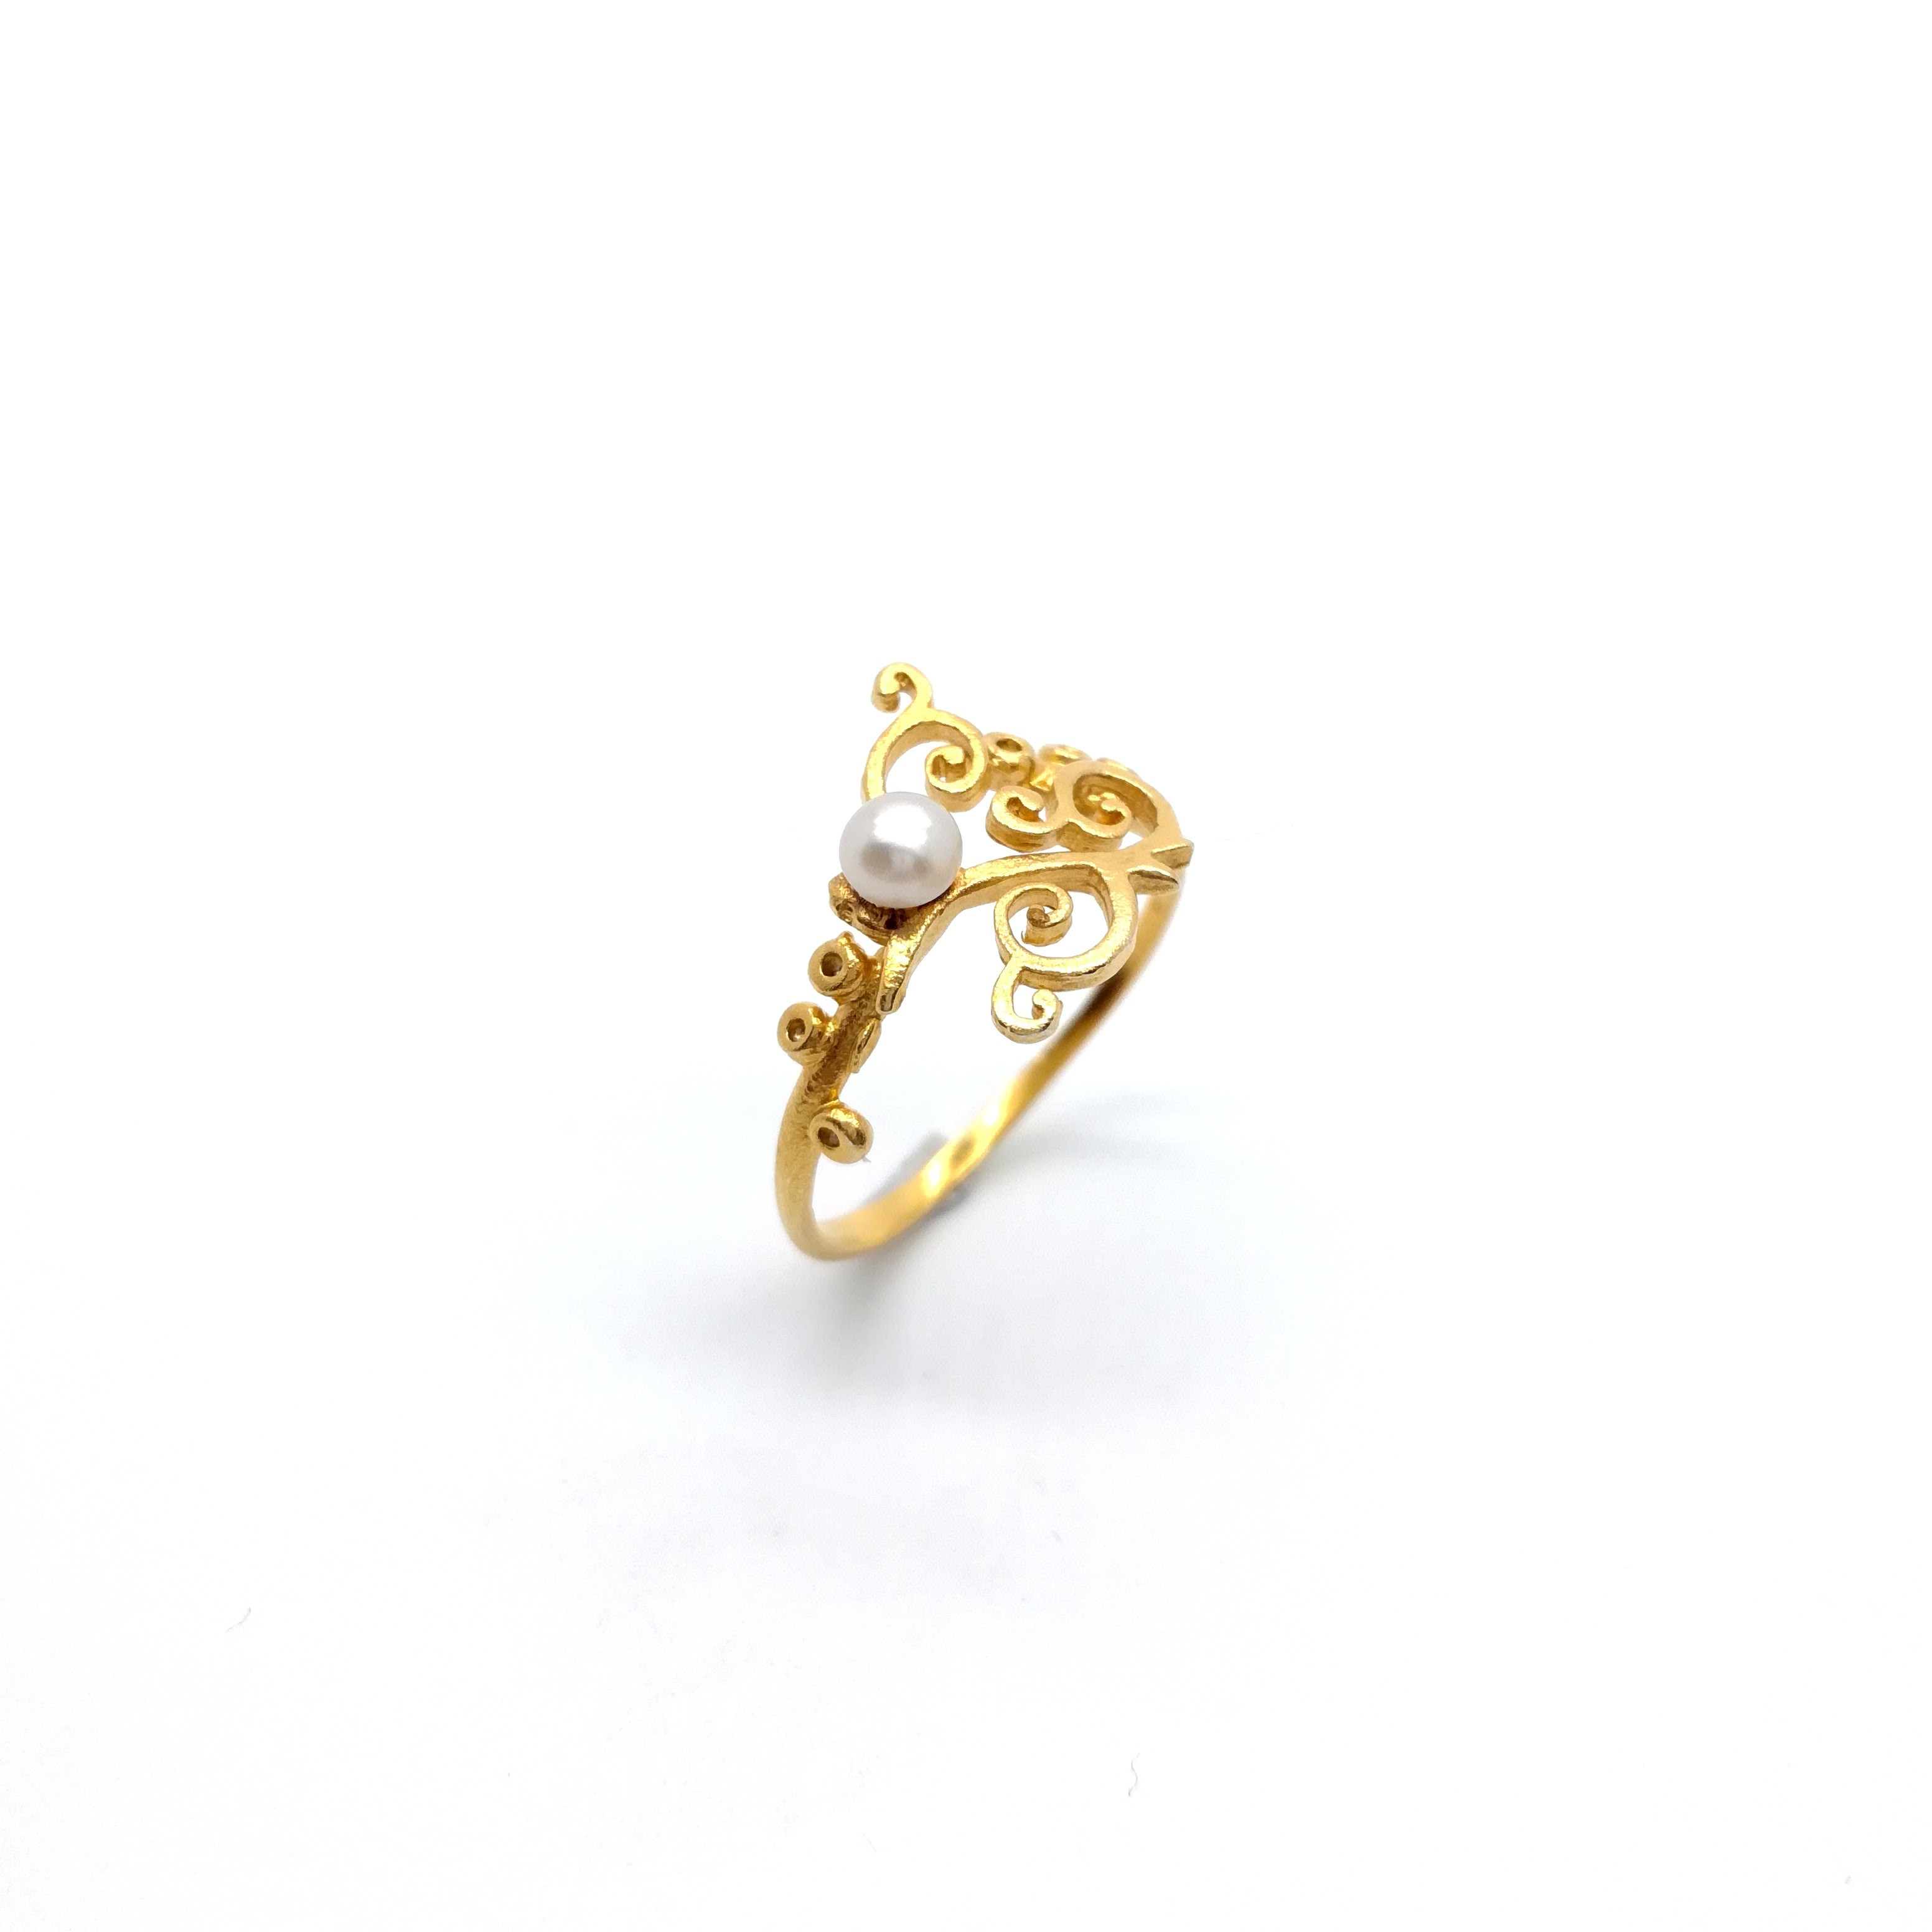 Gold ring 14K or 18K with pearl